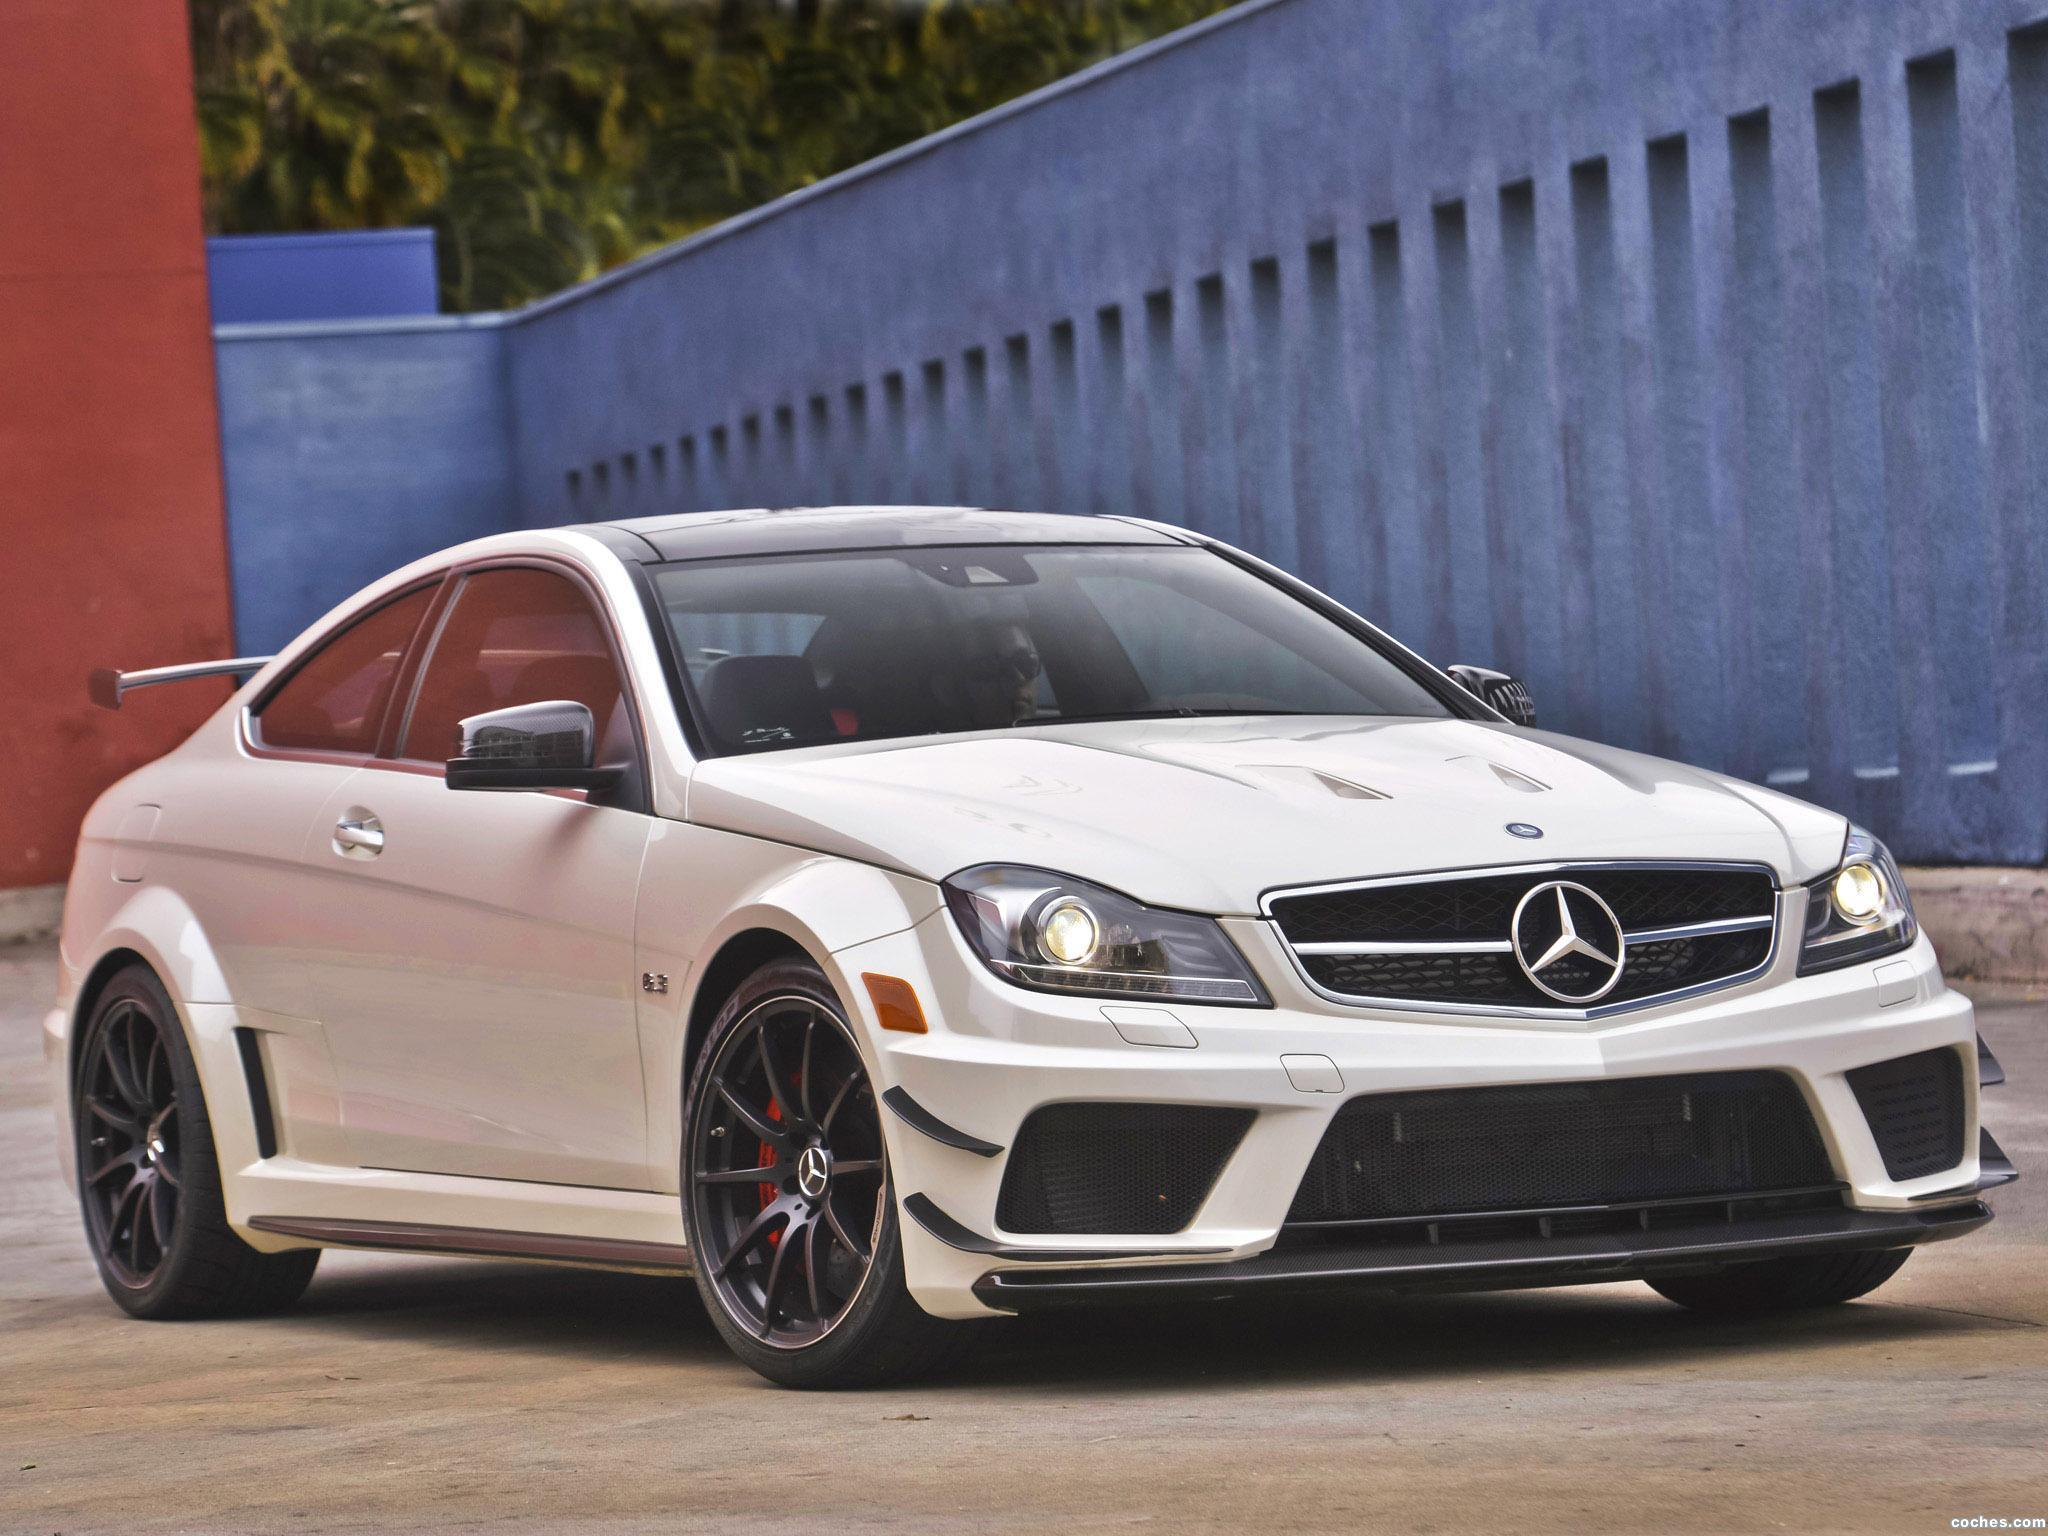 Fotos de mercedes clase c coupe amg c63 black series usa 2012 - 2012 mercedes c63 amg coupe ...